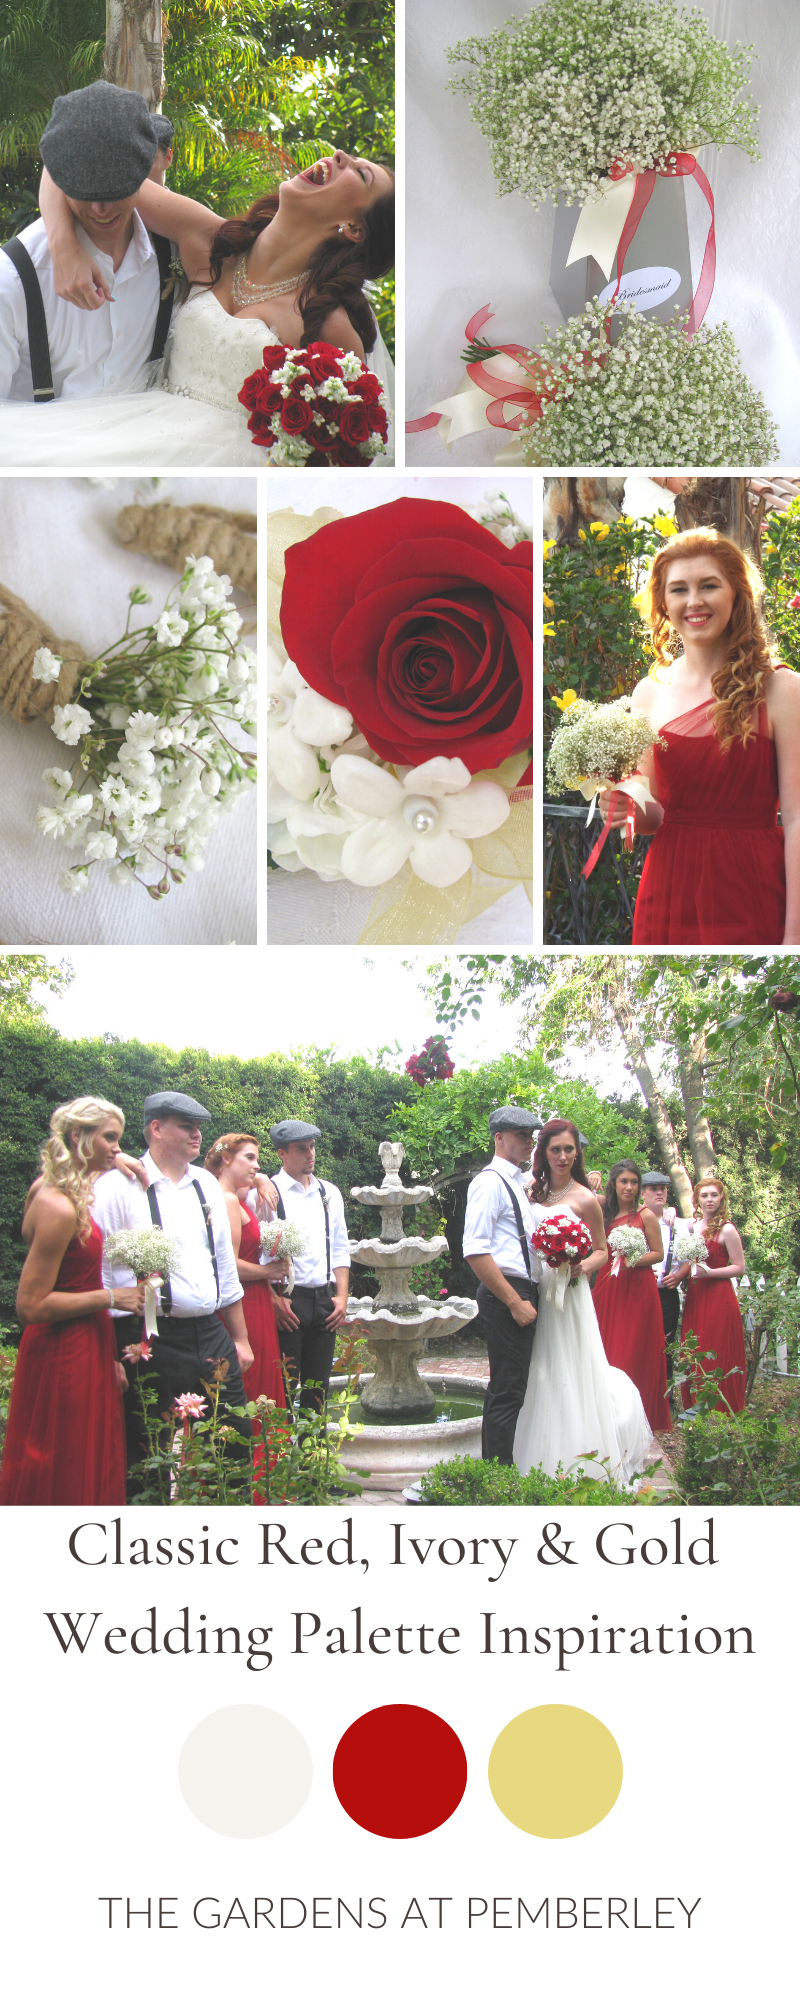 Simple Rustic Classic Romantic Red and Ivory Southern California Wedding Color Palette#california #classic #color #ivory #palette #red #romantic #rustic #simple #southern #wedding